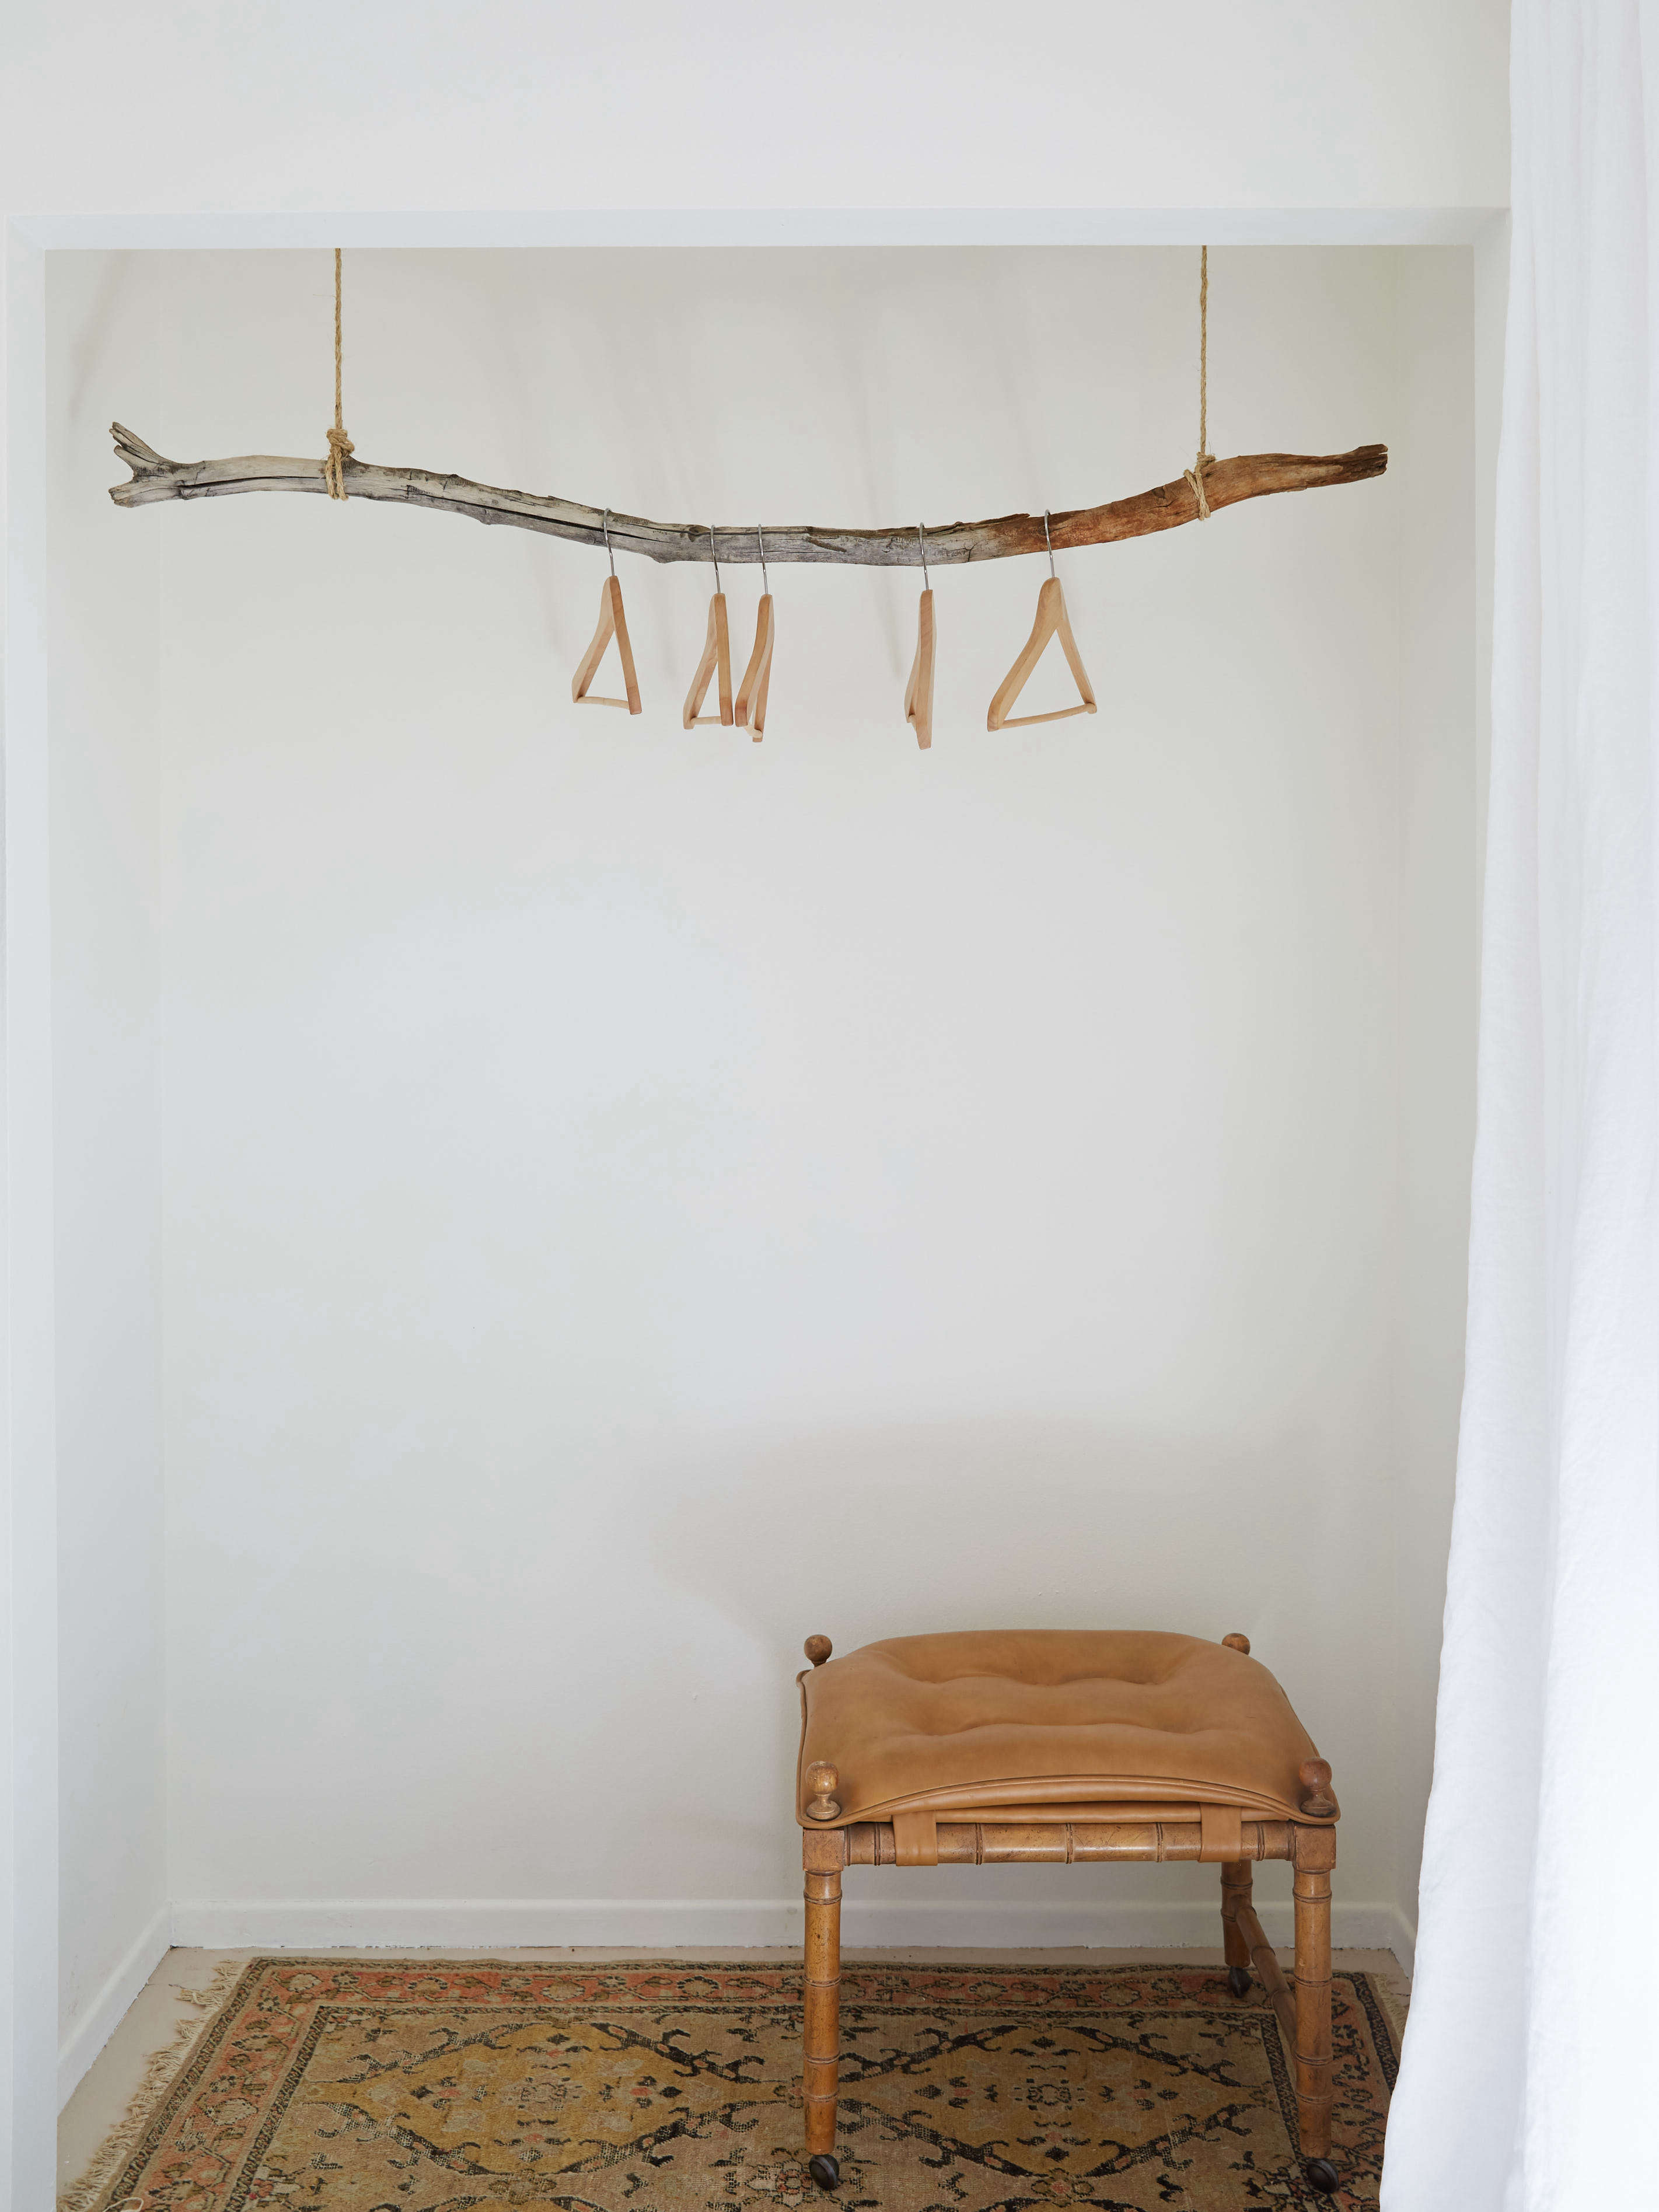 DIY closet made from a hanging branch at the Joshua Tree Casita Air Bnb, Kate Sears photo